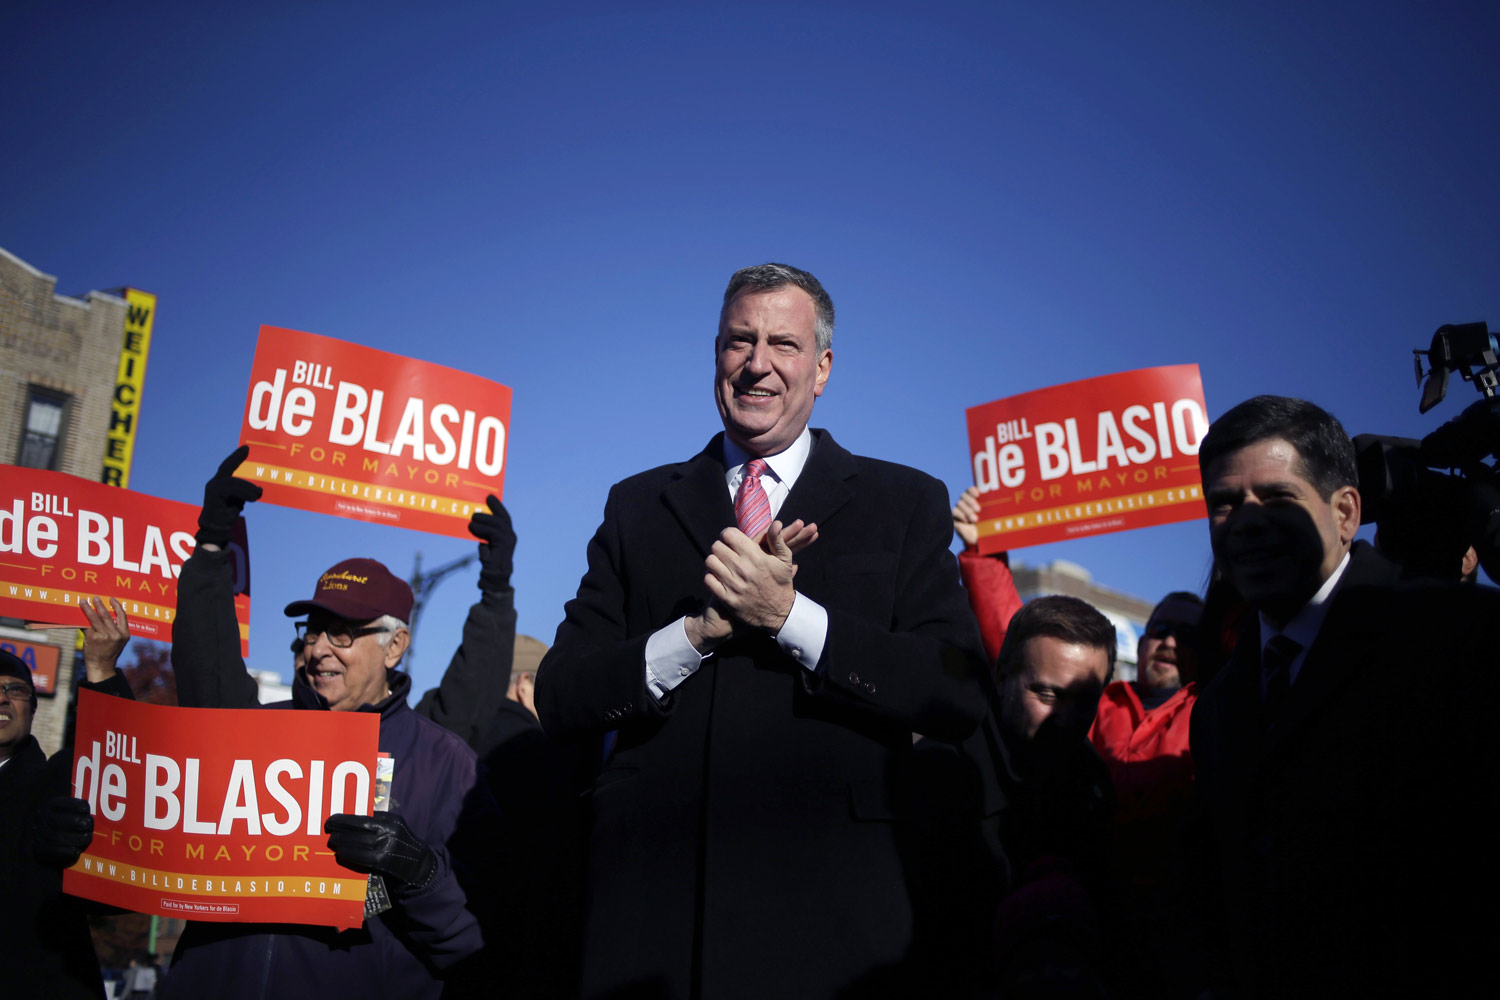 Third-Way-criticized-New-York-Mayor-elect-Bill-de-Blasios-universal-pre-K-education-policy-today.-AP-Photo-Seth-Wenig